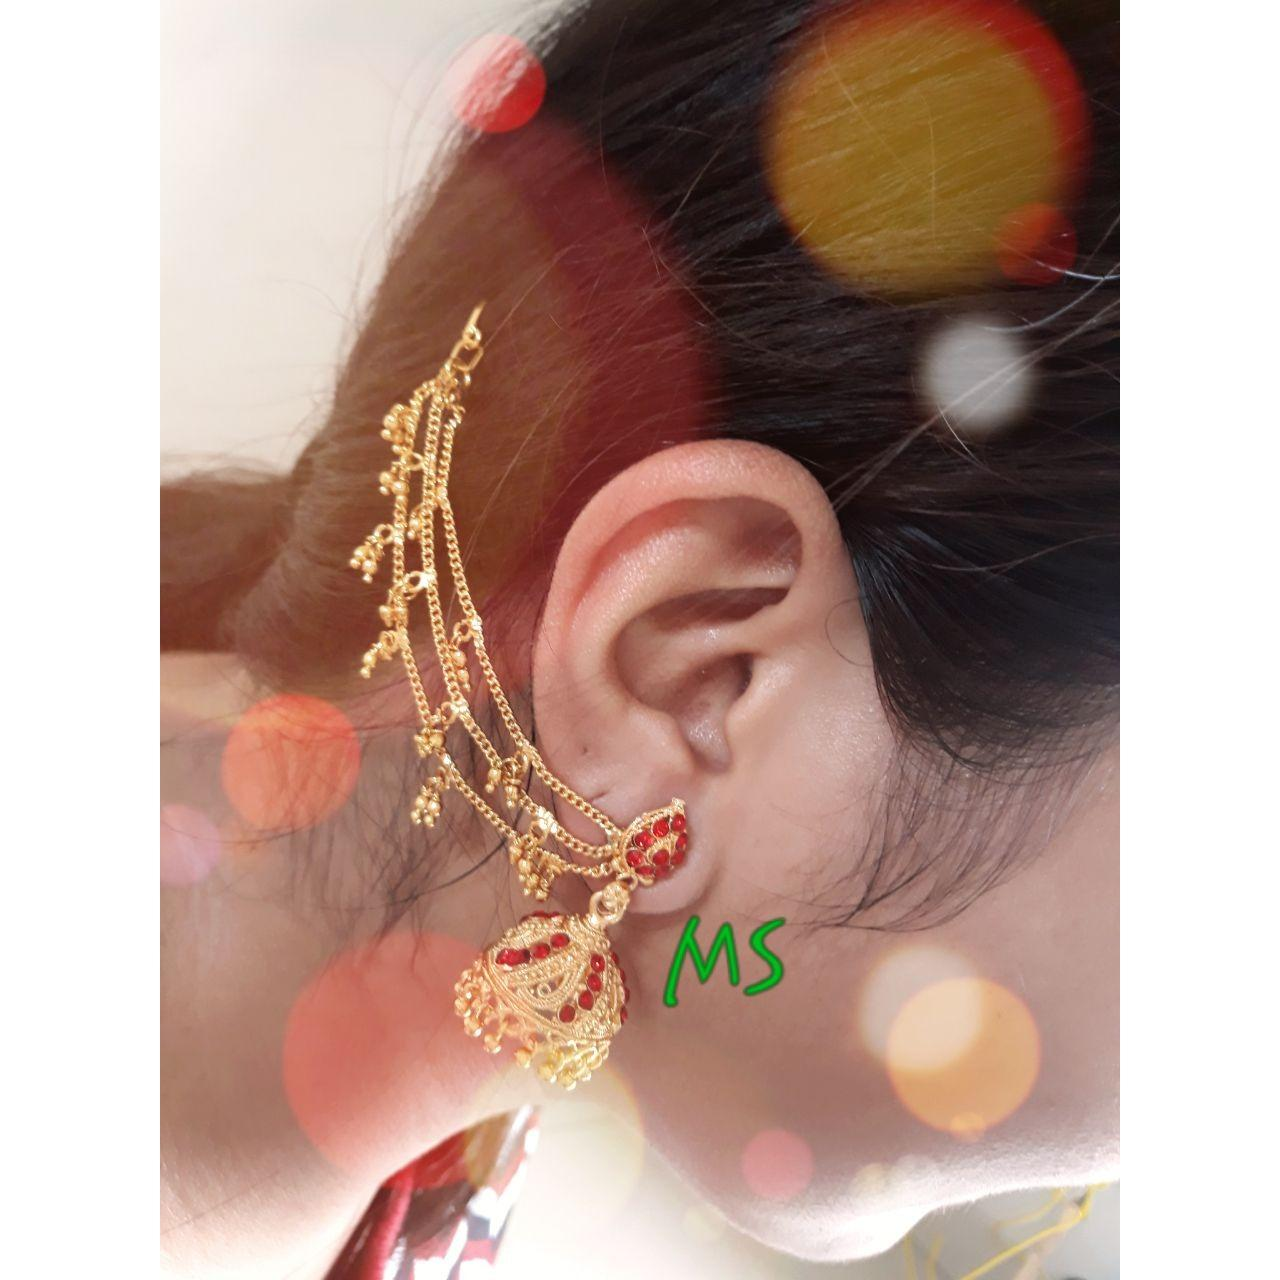 Anting sambung